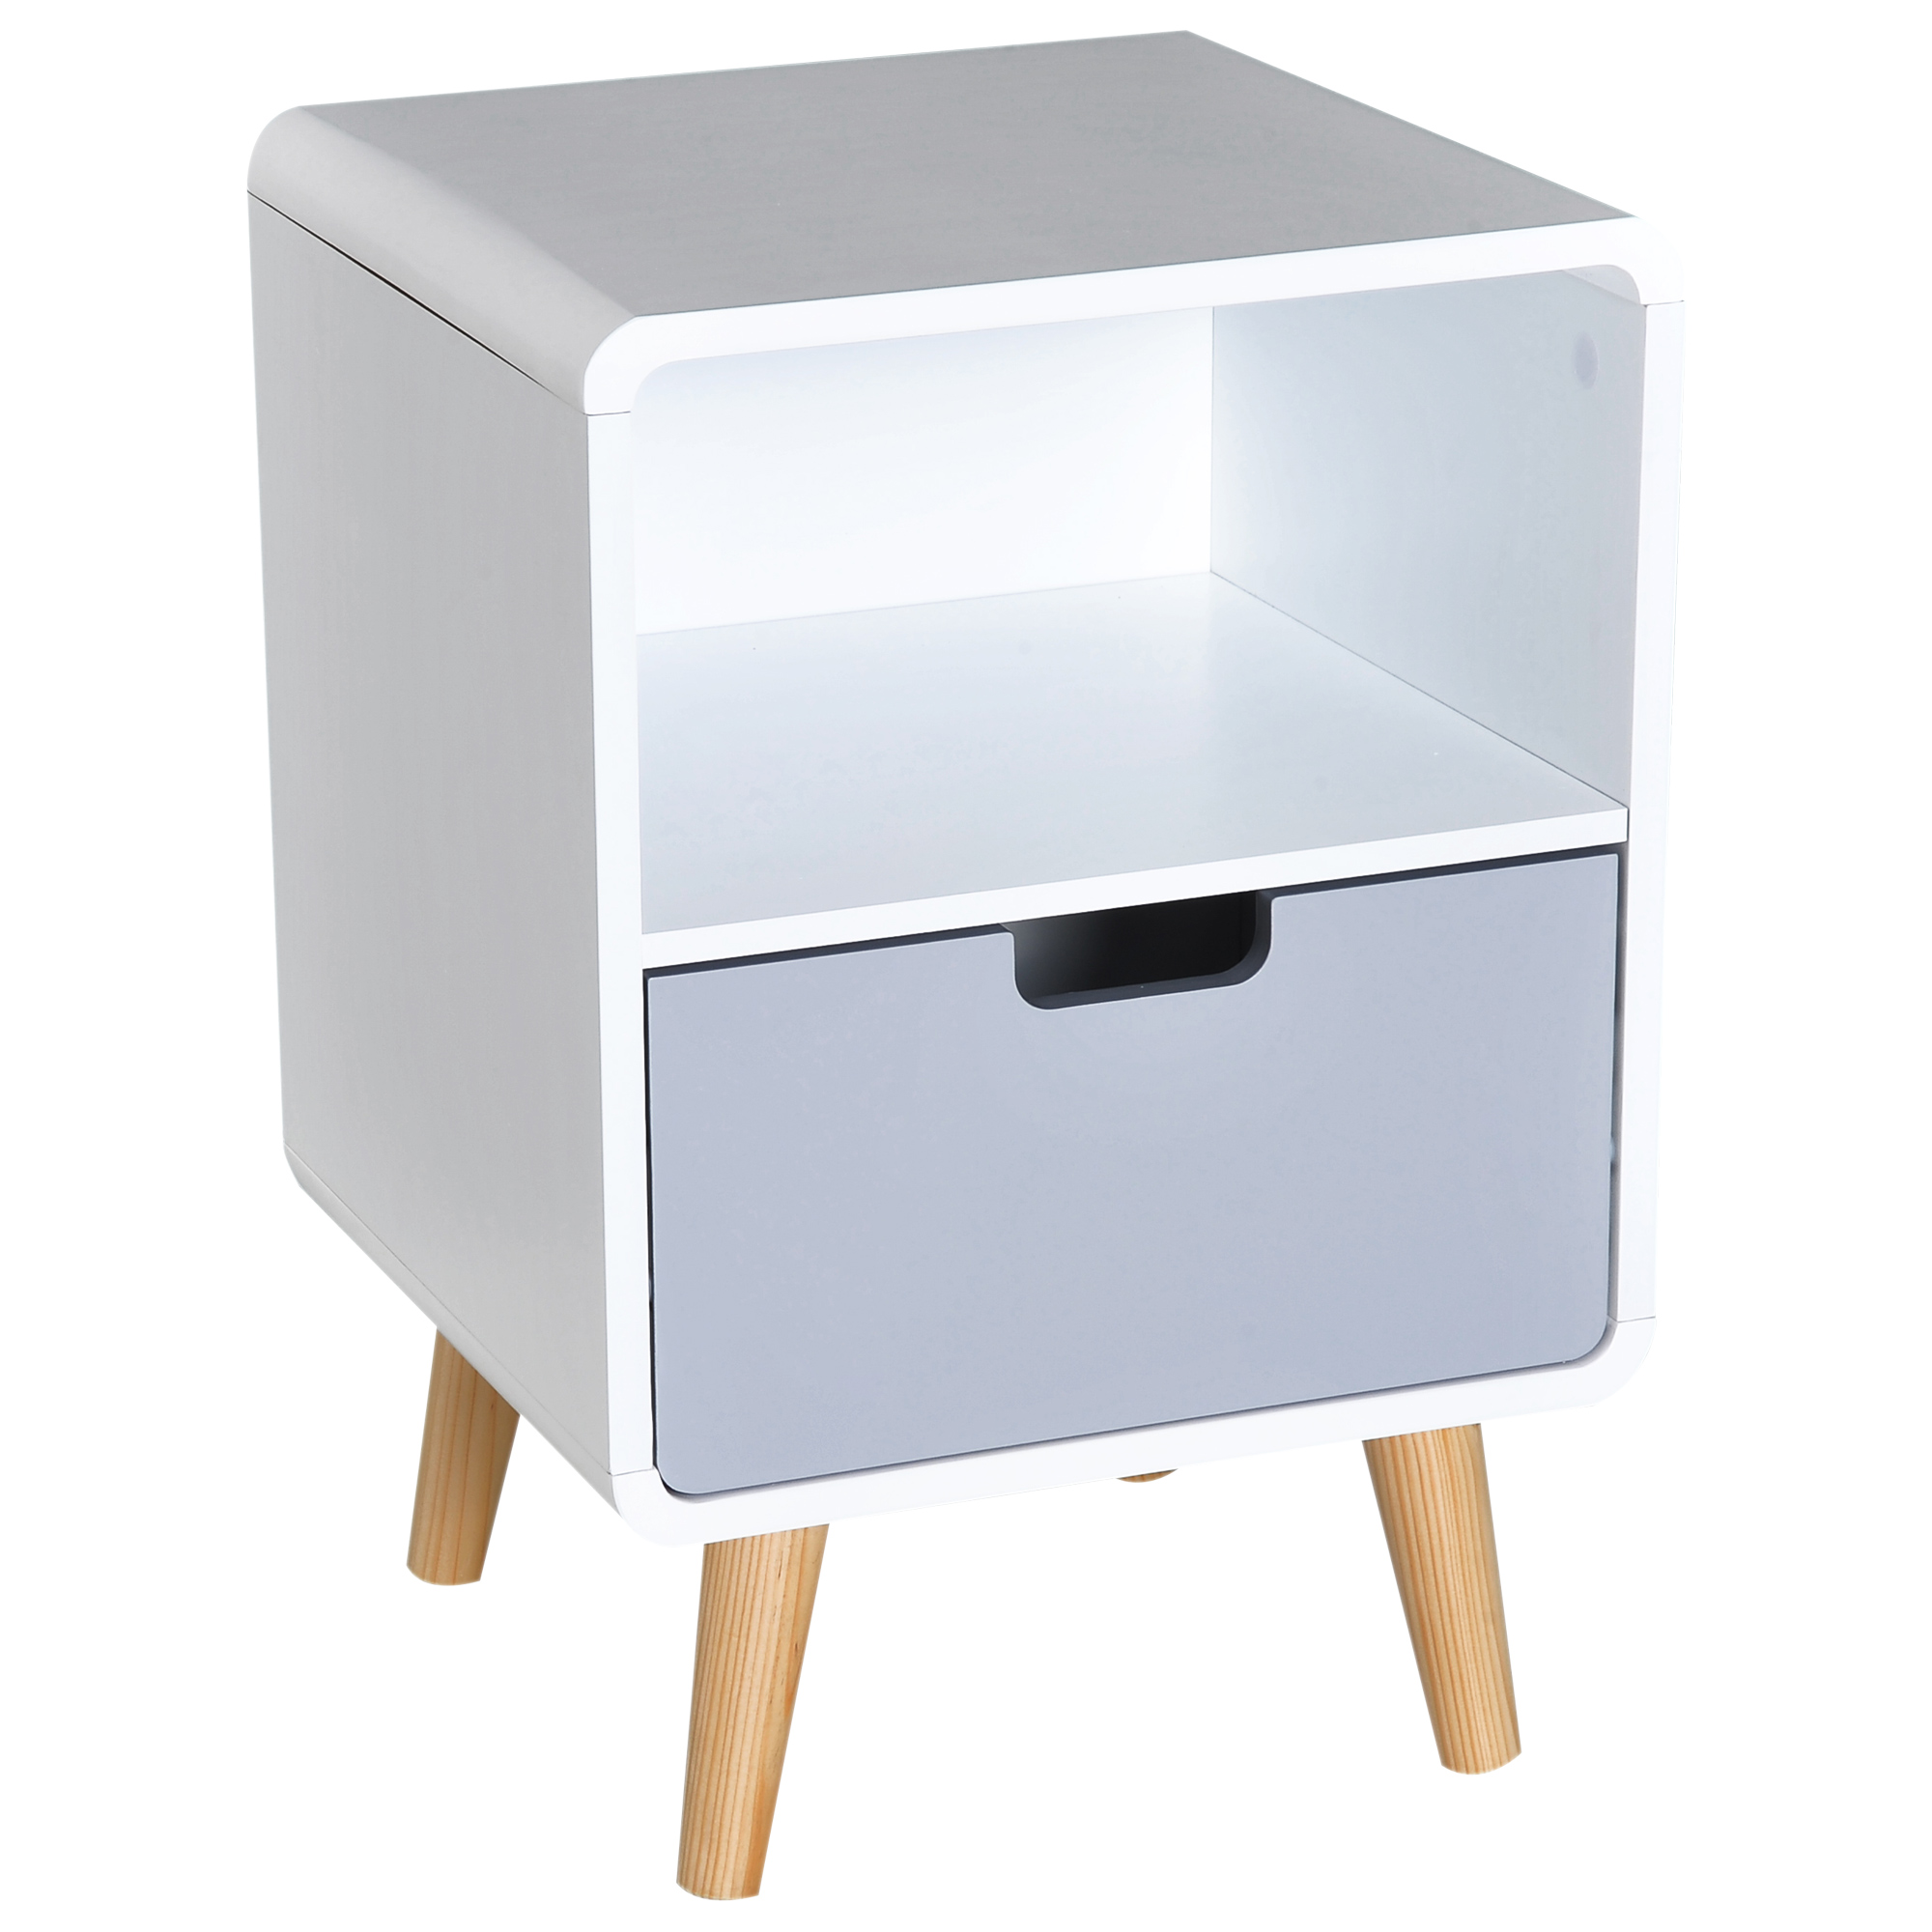 HOMCOM Scandinavian Style Bedside Table, 40Lx38Wx58H cm-White/Grey/Natural Wood Colour